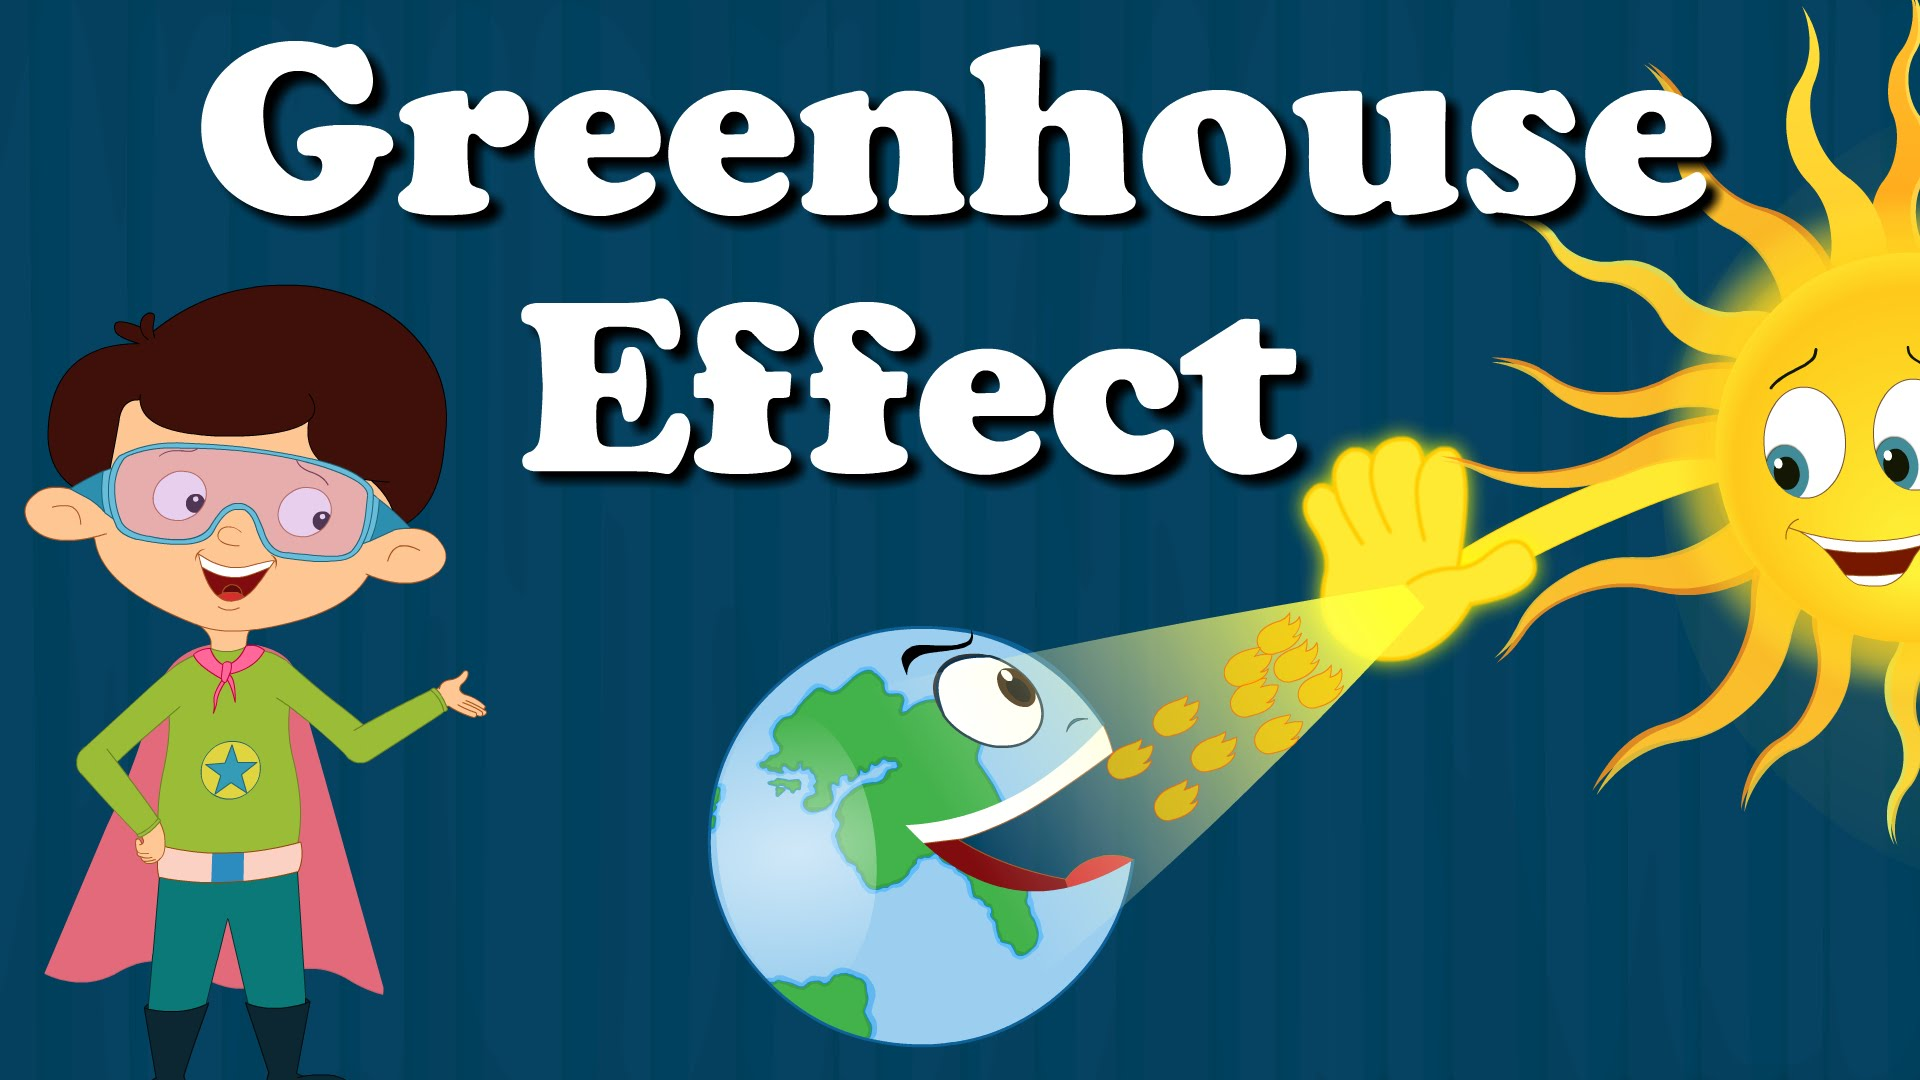 Free Greenhouse Gases Cliparts Download Free Clip Art